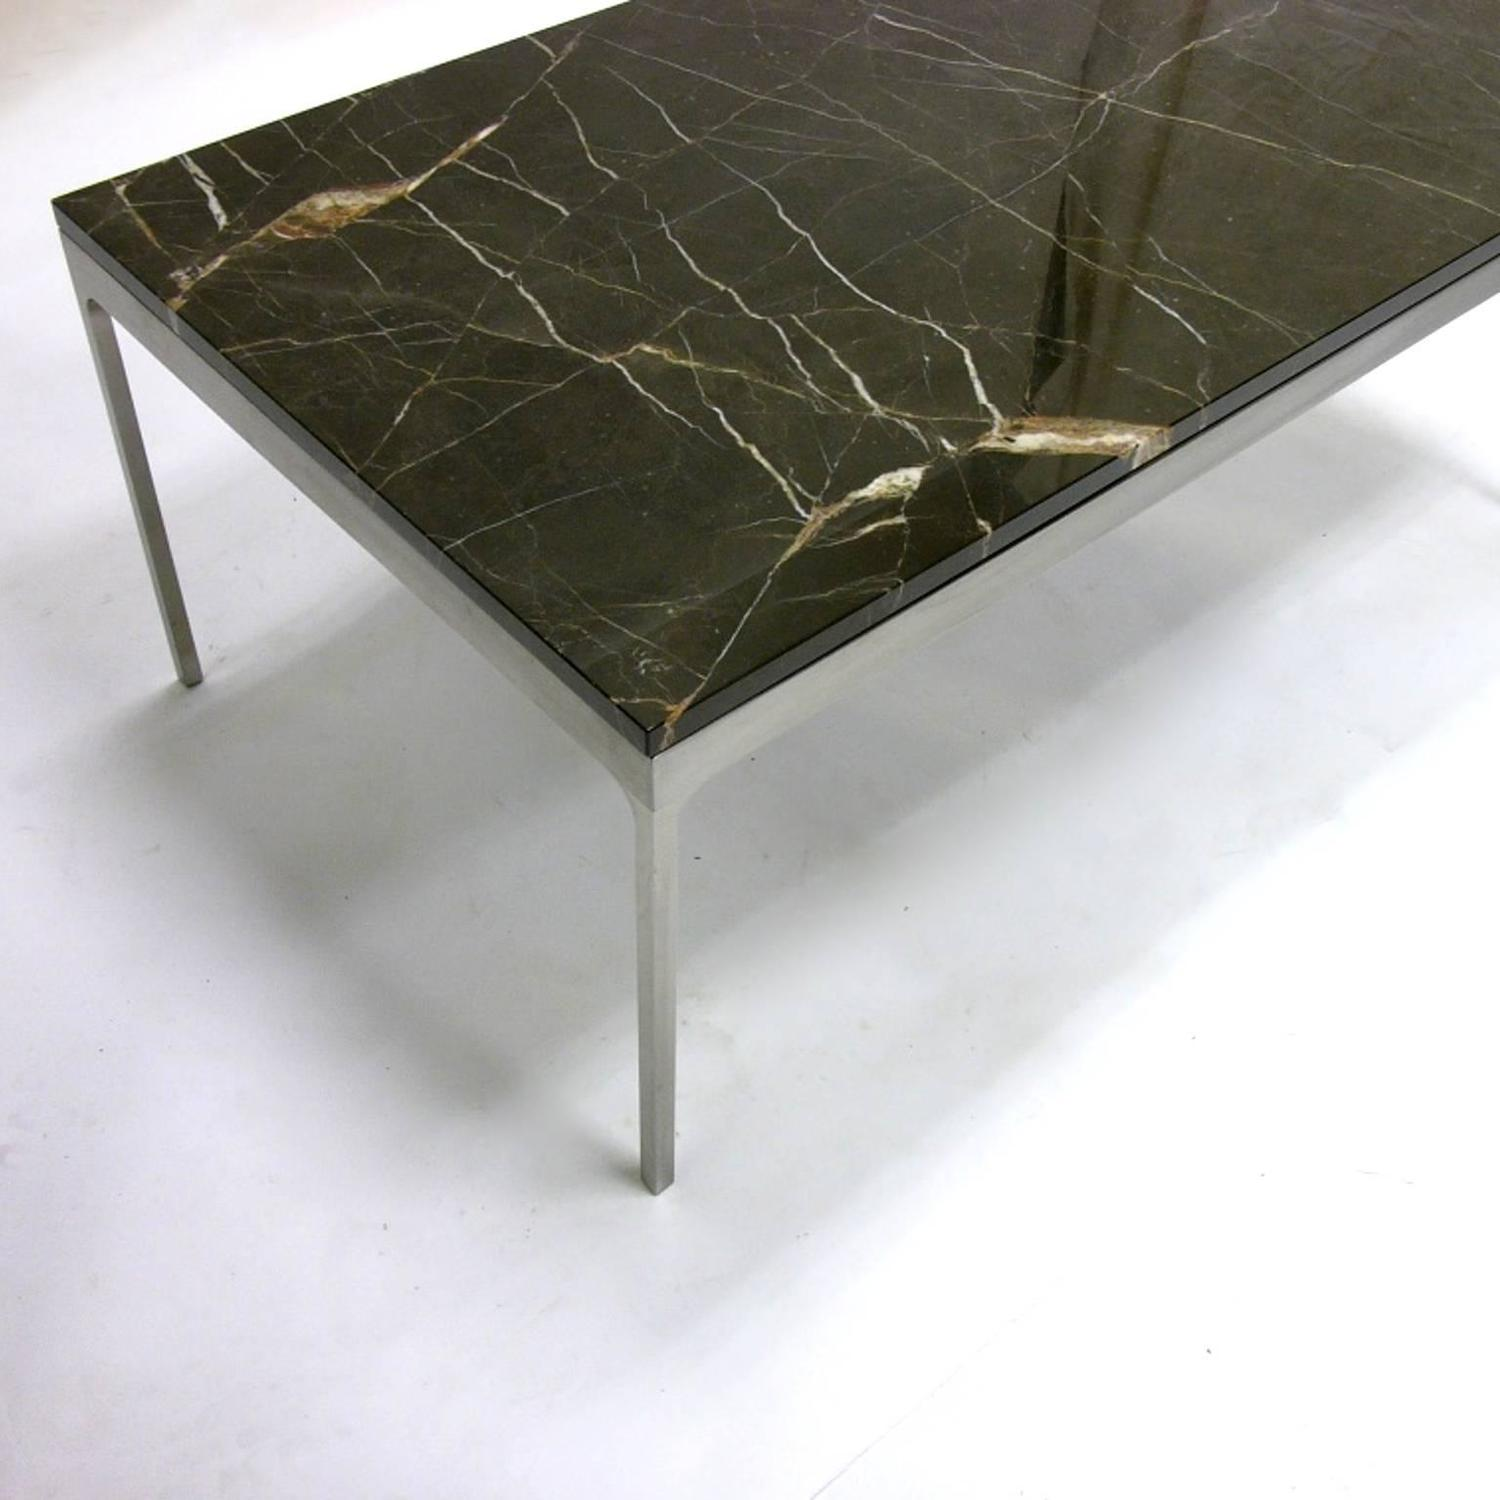 Nicos Zographos Steel And Black Marble Nero Marquina Coffee Or Cocktail Table For Sale At 1stdibs